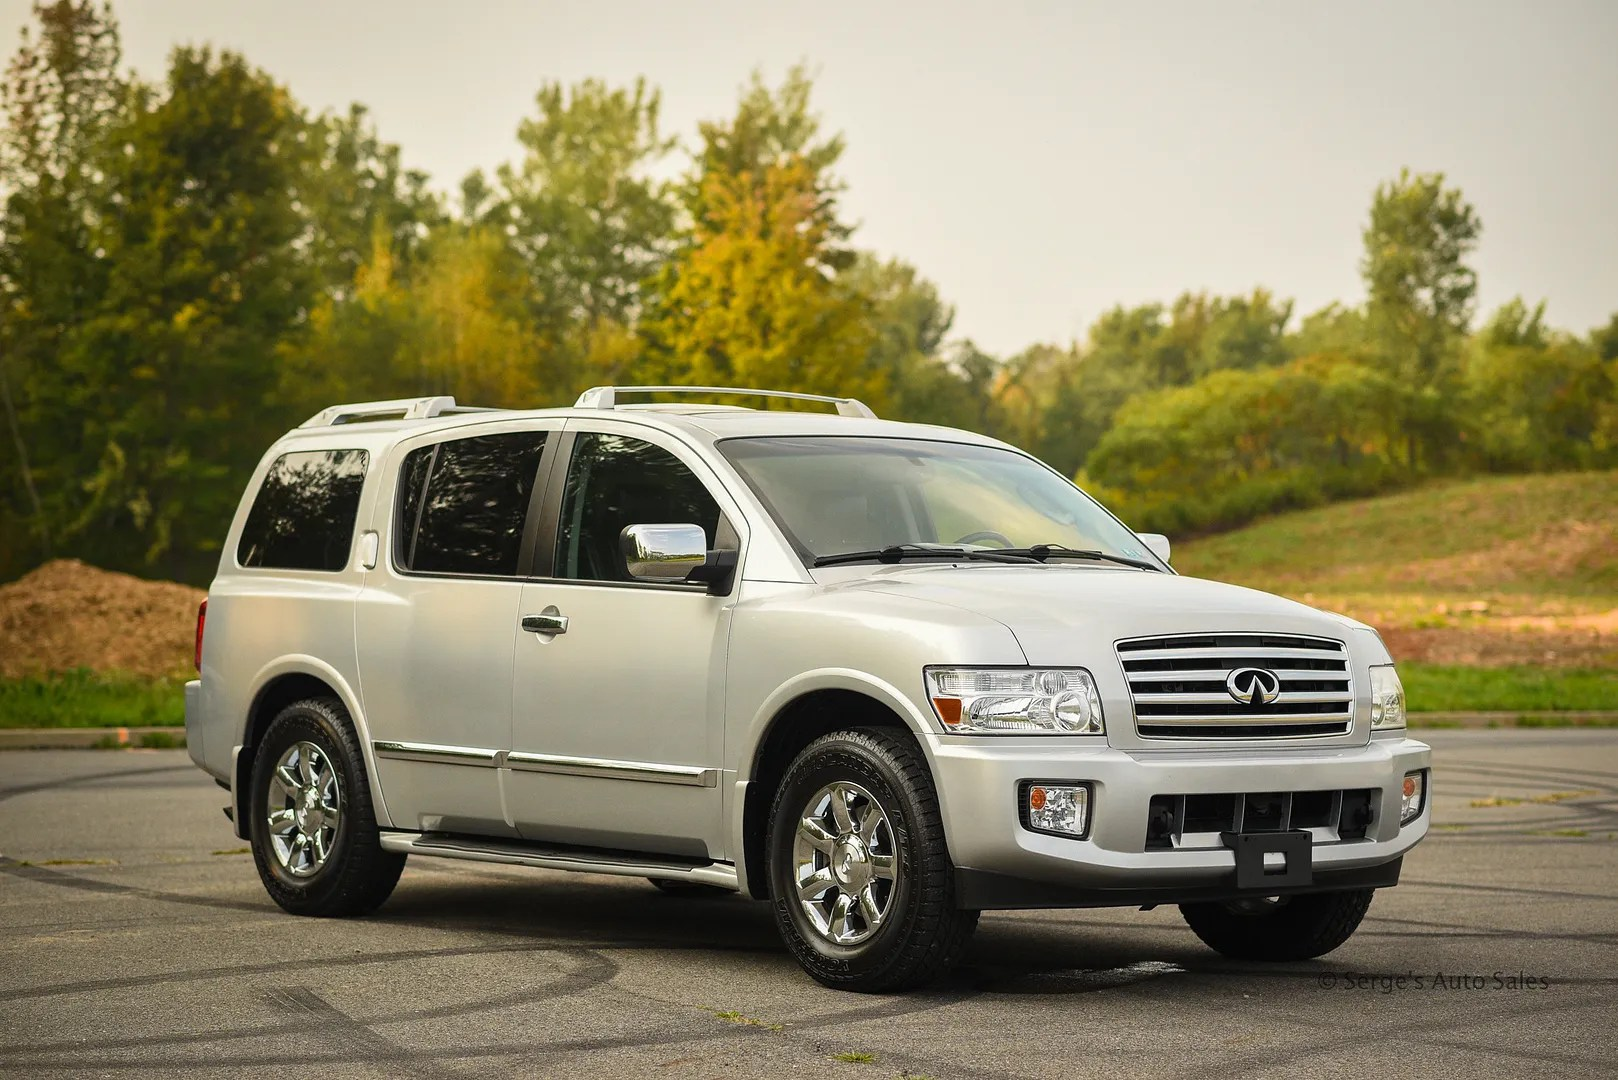 photo Infiniti-Serges-Auto-Sales-Car-dealer-Pennsylvania-QX56-Scranton-Nepa-12_zpsfnevb9s5.jpg